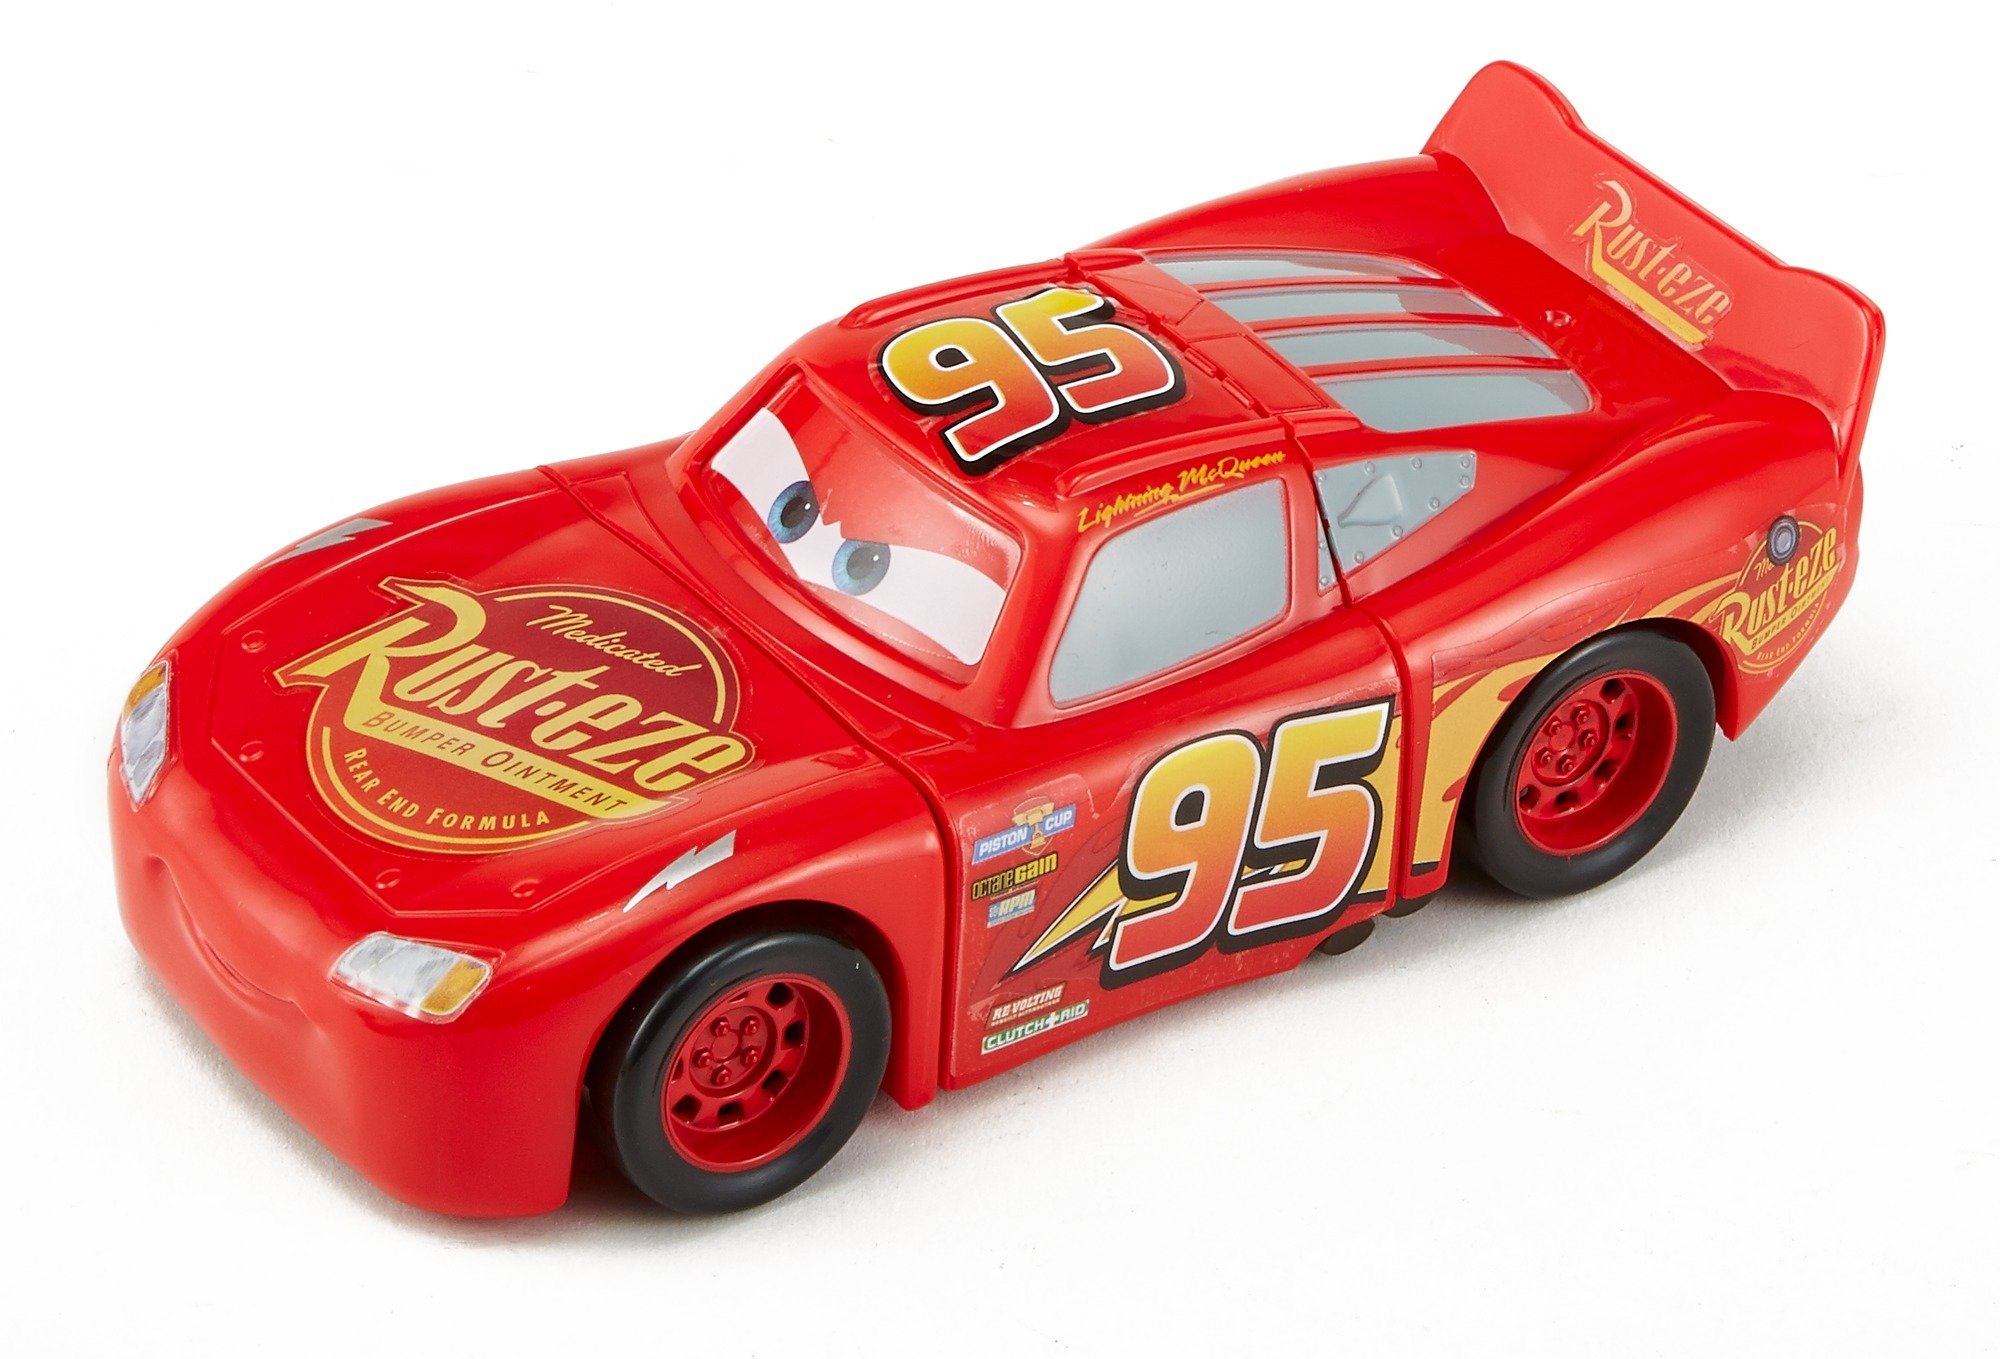 Disney DYW39 Pixar Cars 3 Race and Reck Lightning McQueen Vehicle Disney New Disney Pixar Cars 3 Twisted Crashers vehicle.  His body twists and his eyes change after the crash!  Restore him to his former; pre smash glory by simply twisting the car back into place! 6